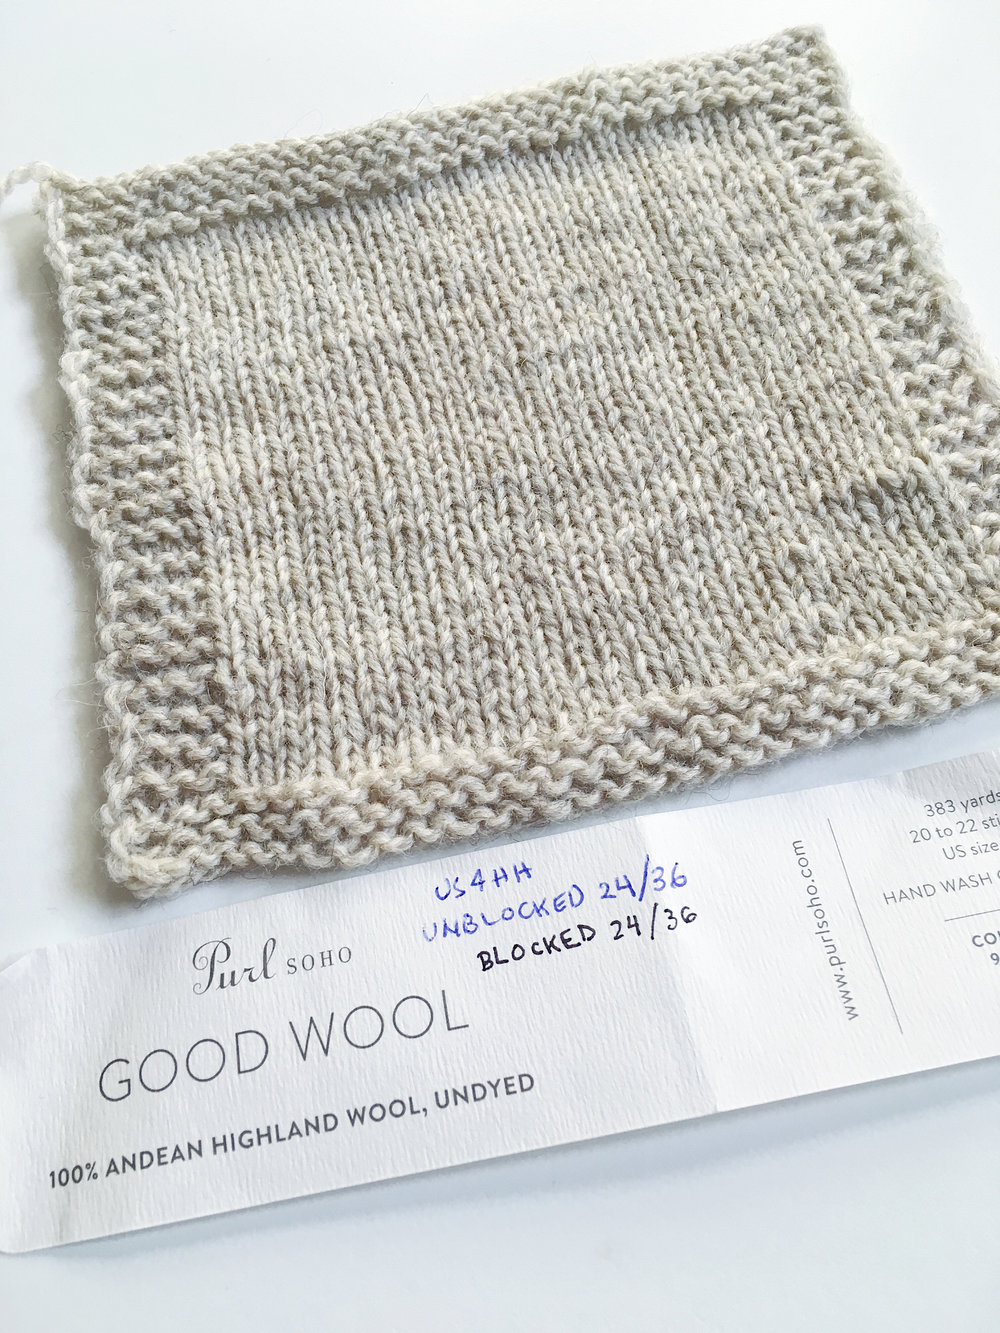 purl-soho_good-wool_3.JPG